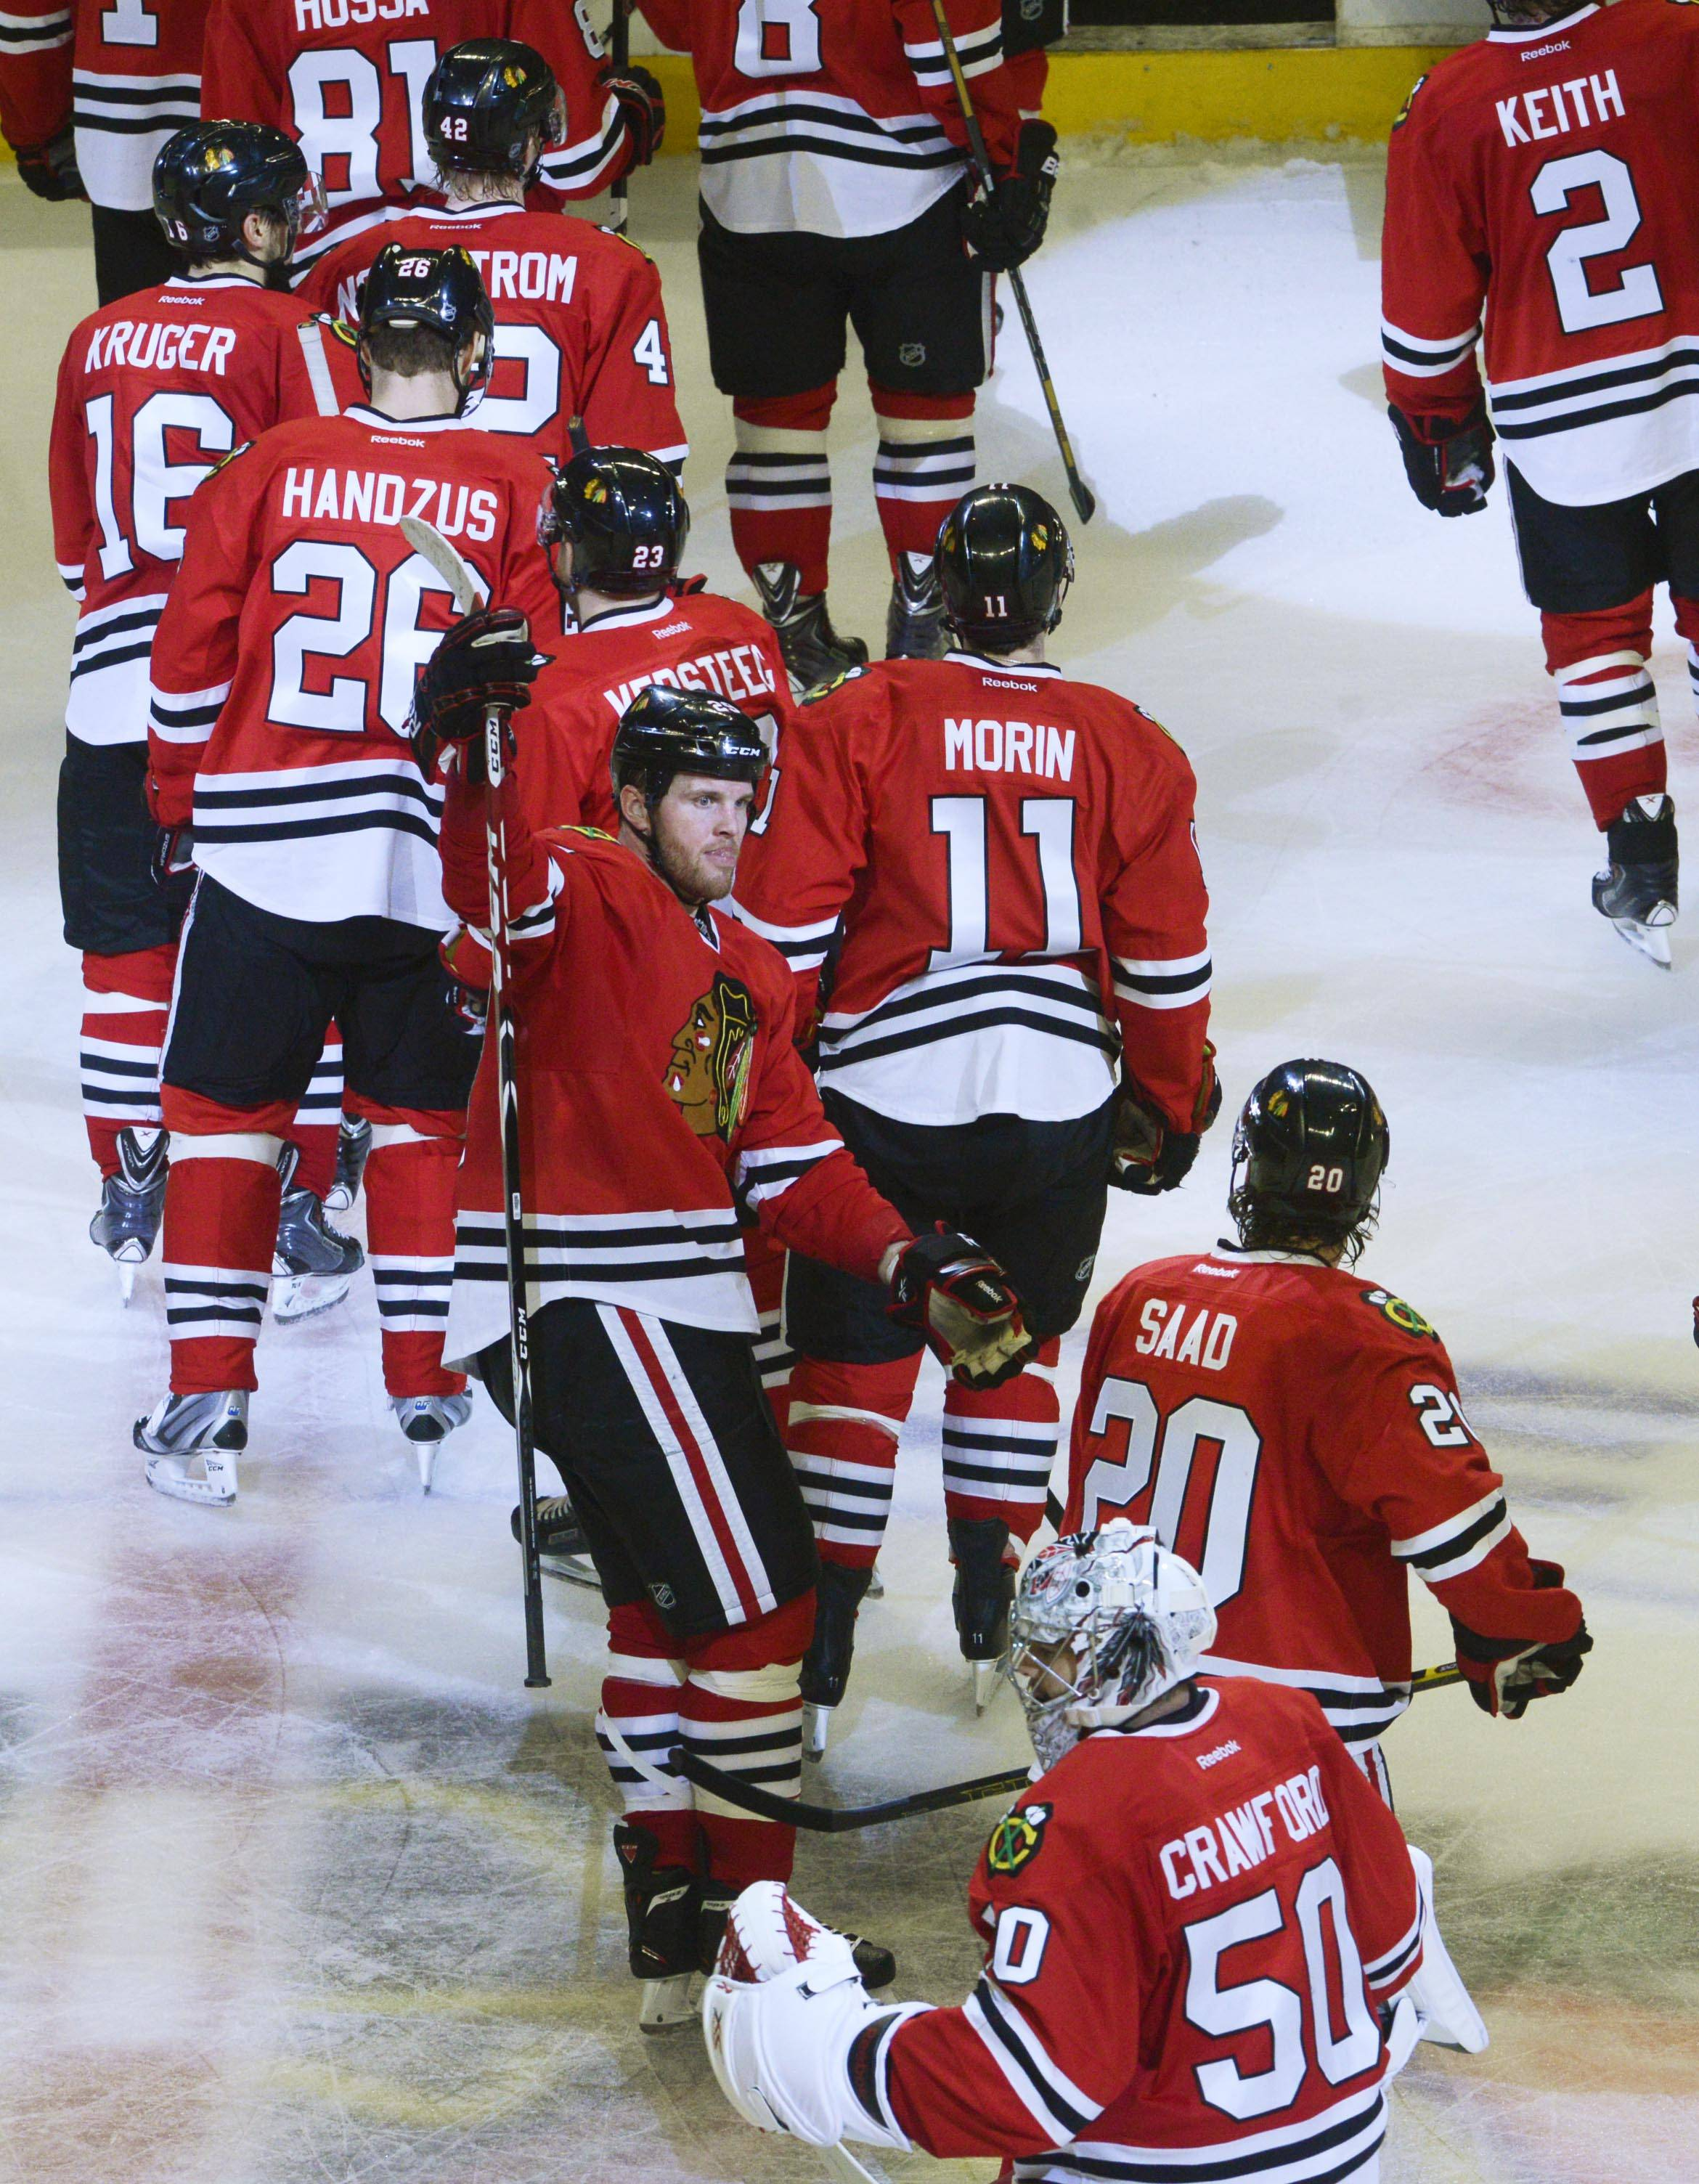 As they leave the ice after a 4-1 victory, Chicago Blackhawks left wing Bryan Bickell comes to congratulate teammate Brandon Saad on a two-goal game against the Minnesota Wild. Bickell also scored a goal.